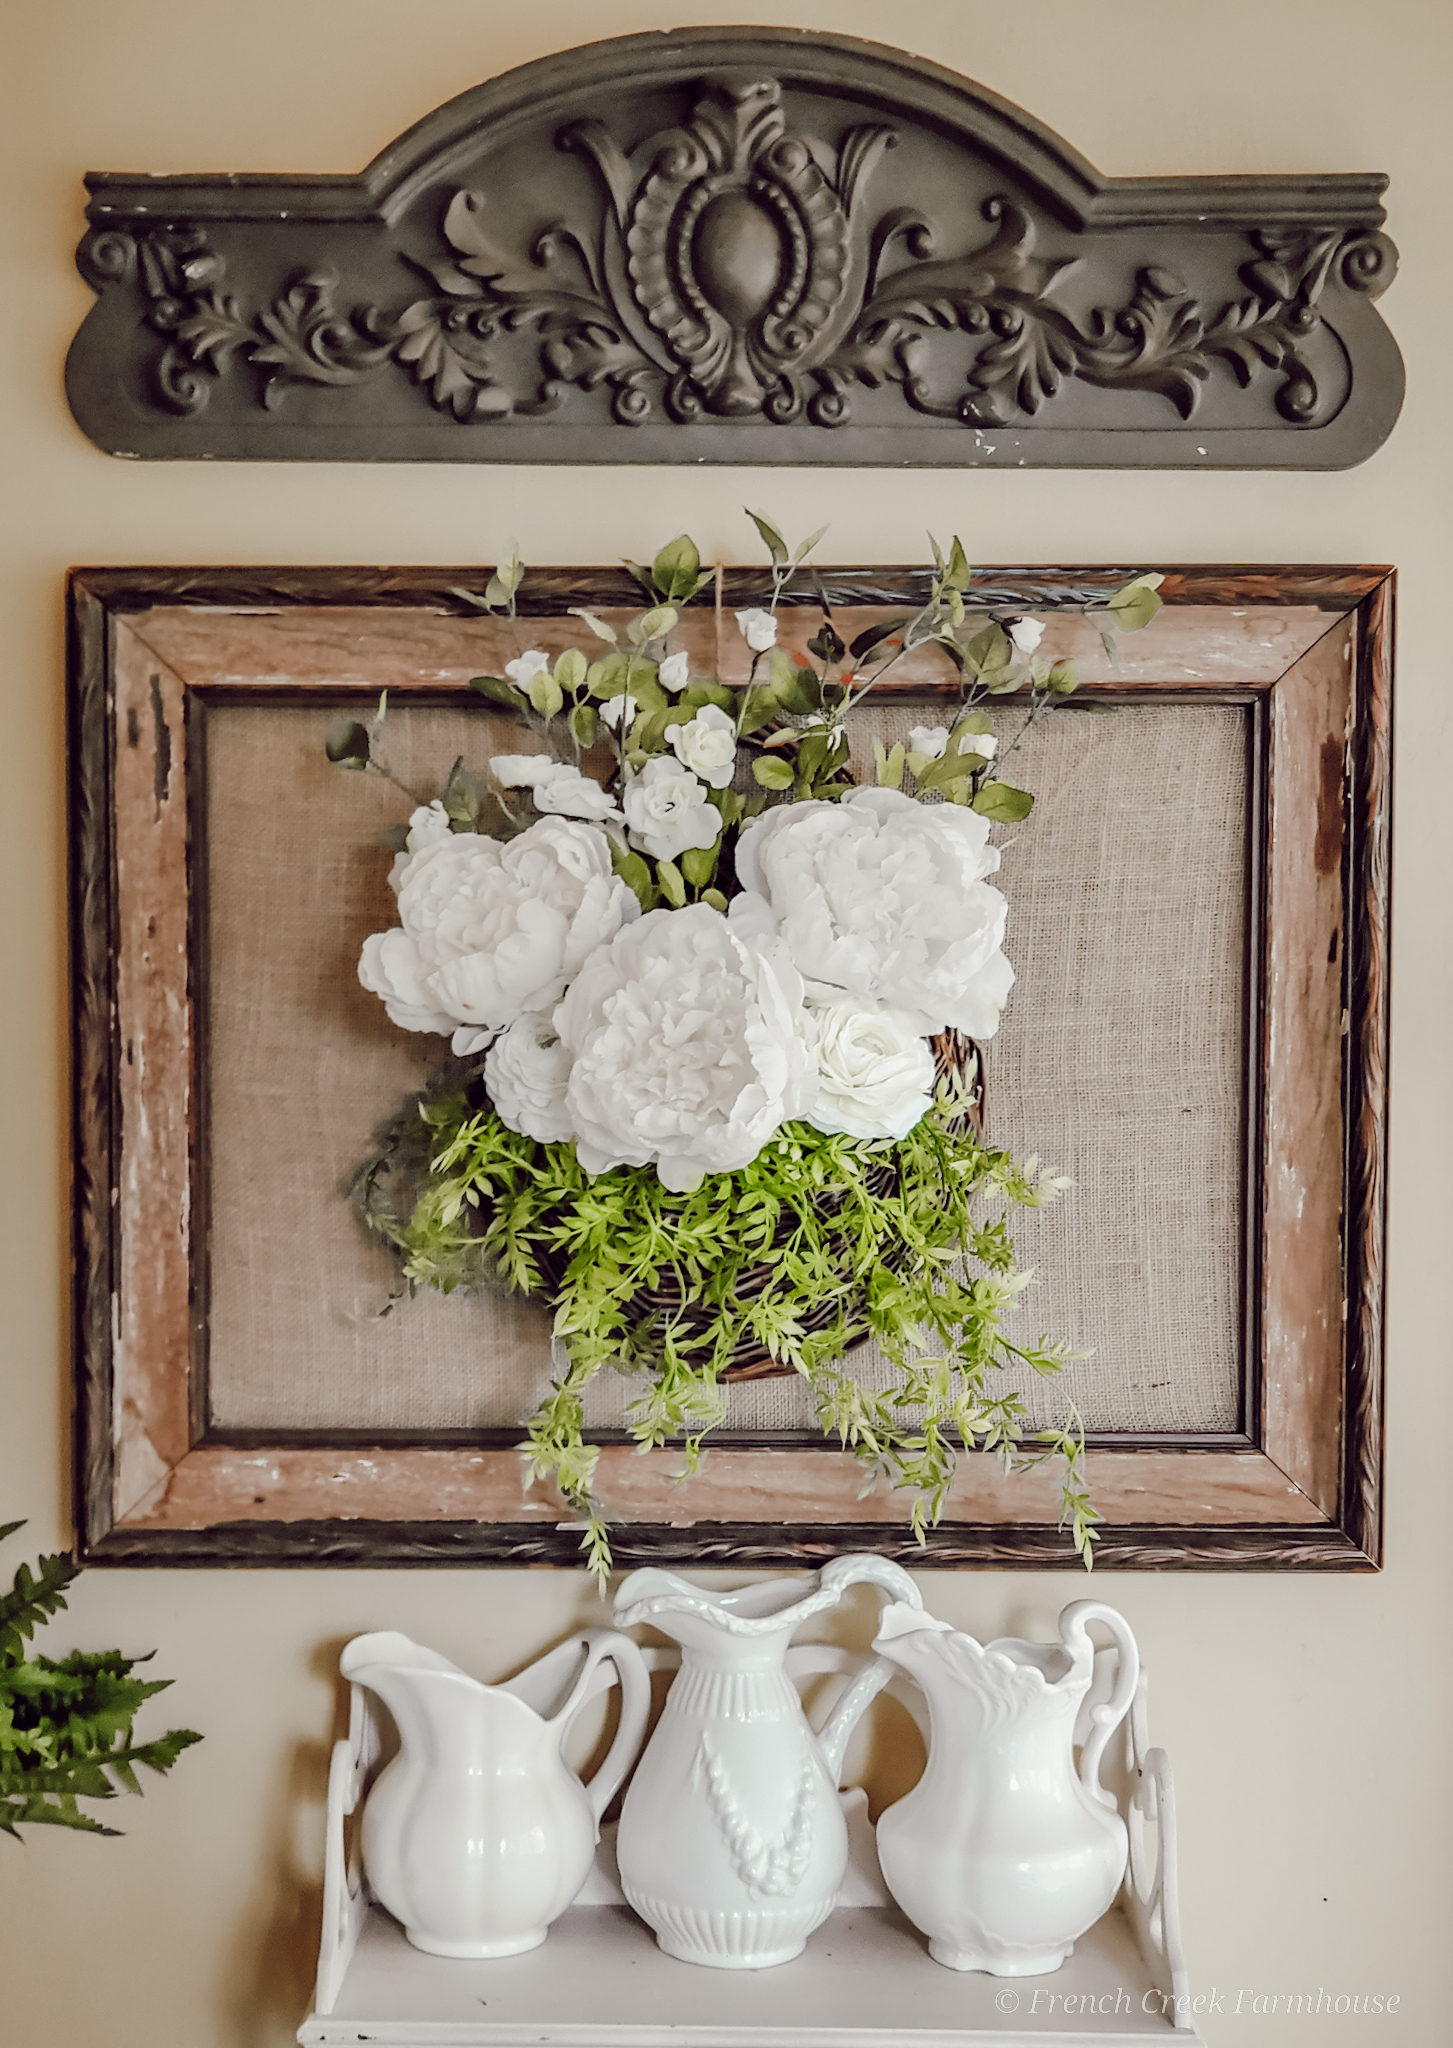 An old picture frame is a beautiful backdrop for floral arrangements